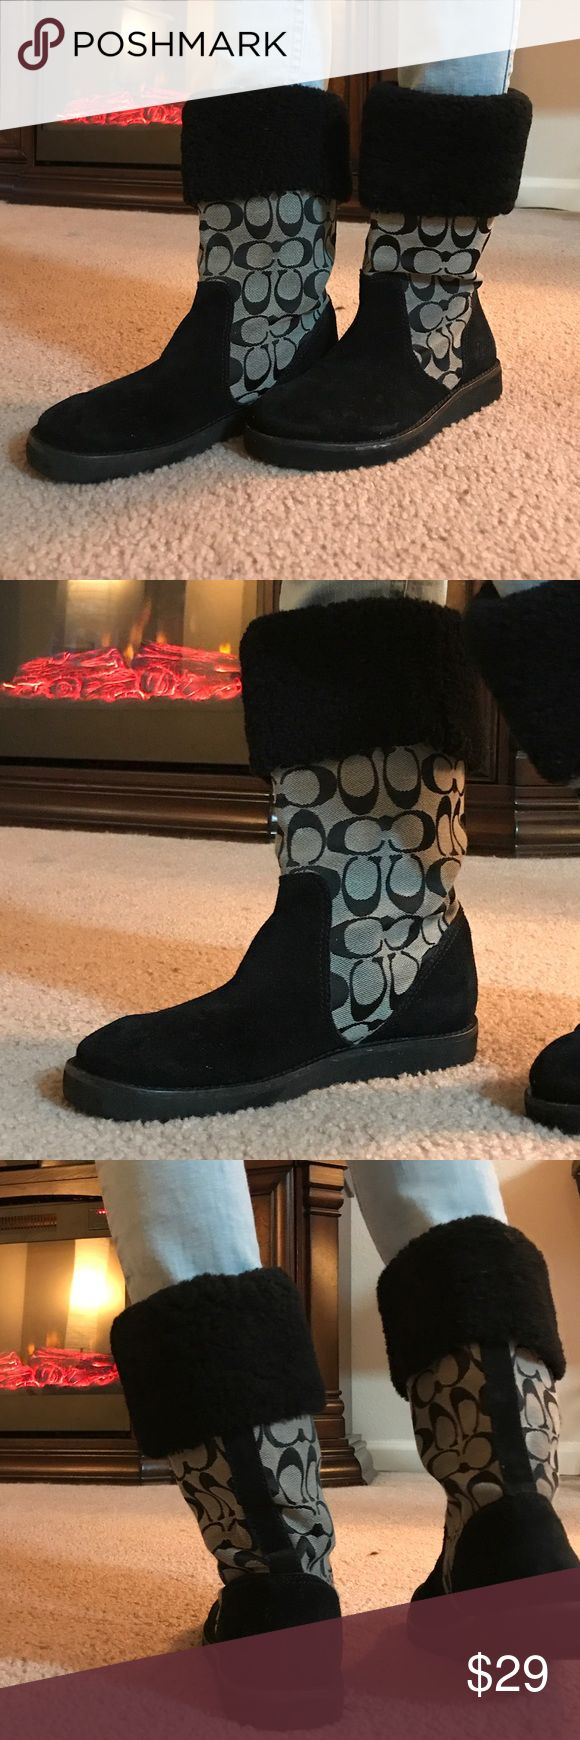 Coach boots Used coach boots. Super cute! Coach Shoes Ankle Boots & Booties